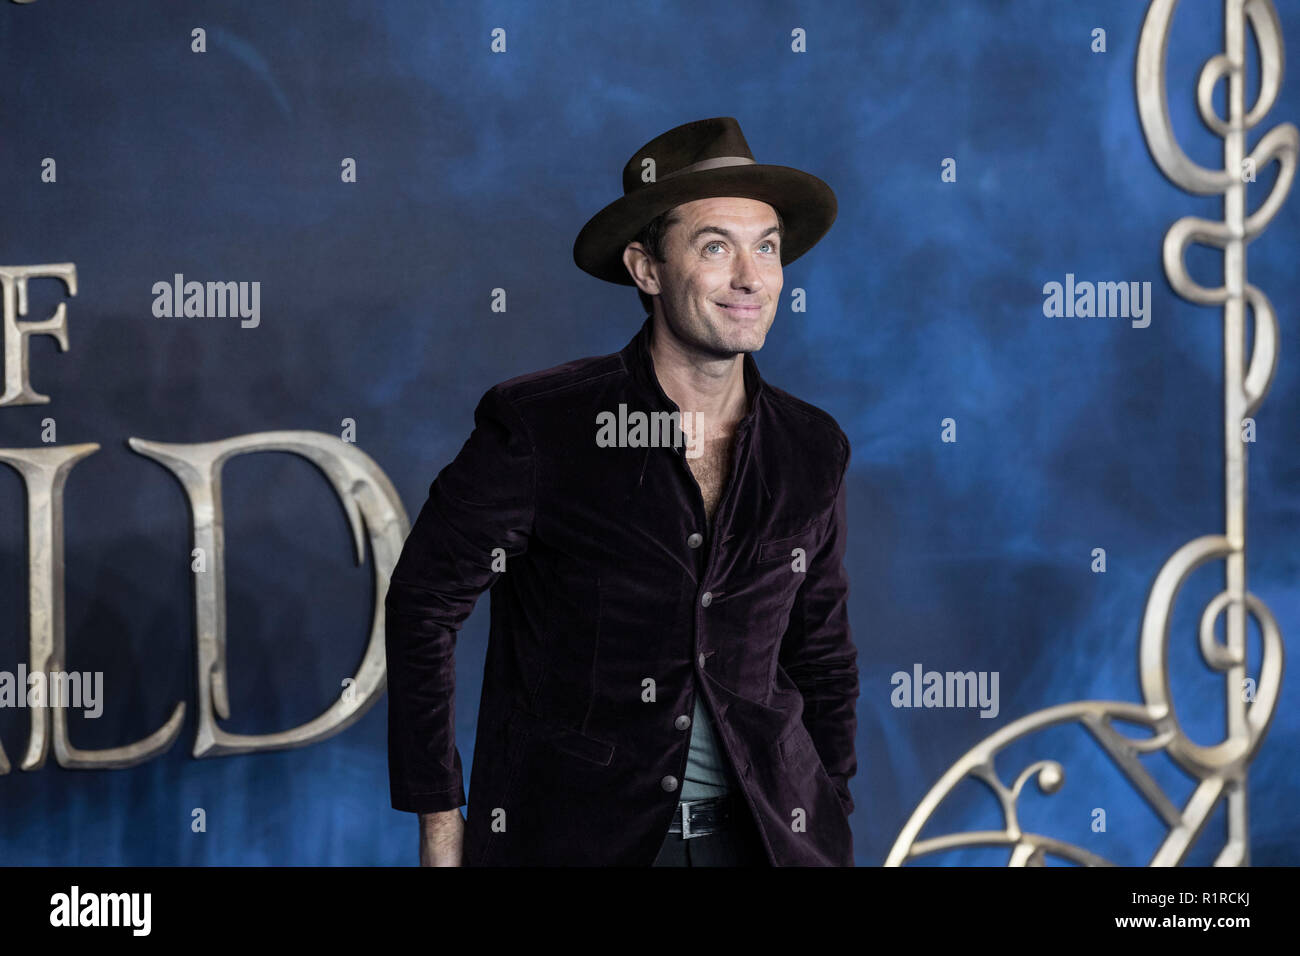 London, UK. 13th Nov, 2018. Fantastic Beasts:The Crimes of Grindelwald film premiere, Leicester Square, London, UK Credit: Jeff Gilbert/Alamy Live News Credit: Jeff Gilbert/Alamy Live News Stock Photo